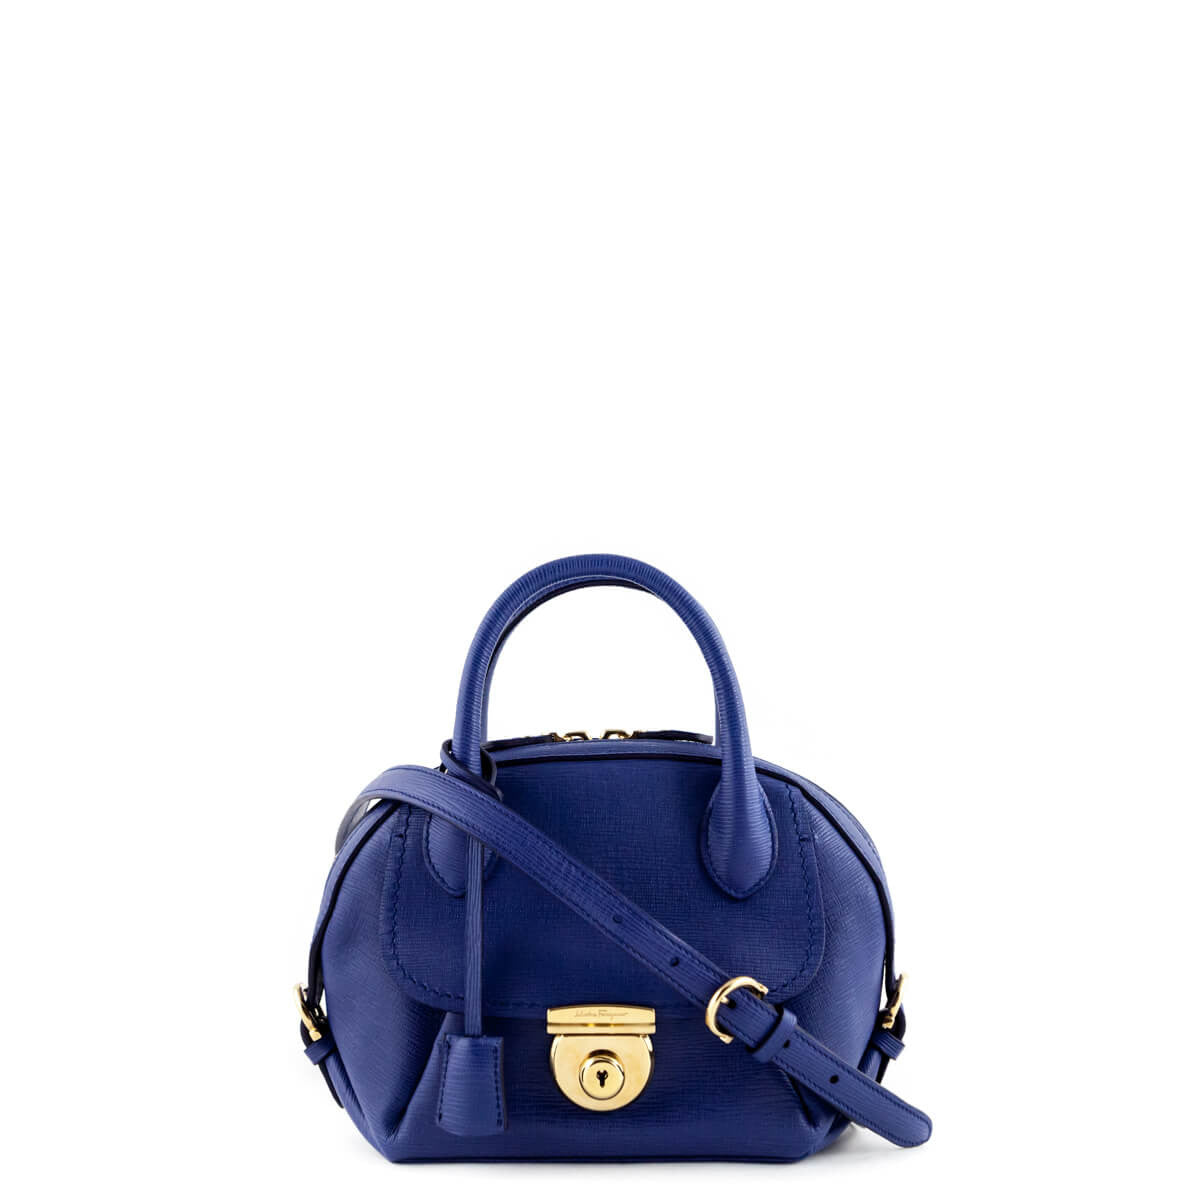 846a84a7e820 Salvatore Ferragamo Cobalt Mini Fiamma Crossbody - LOVE that BAG - Preowned  Authentic Designer Handbags ...